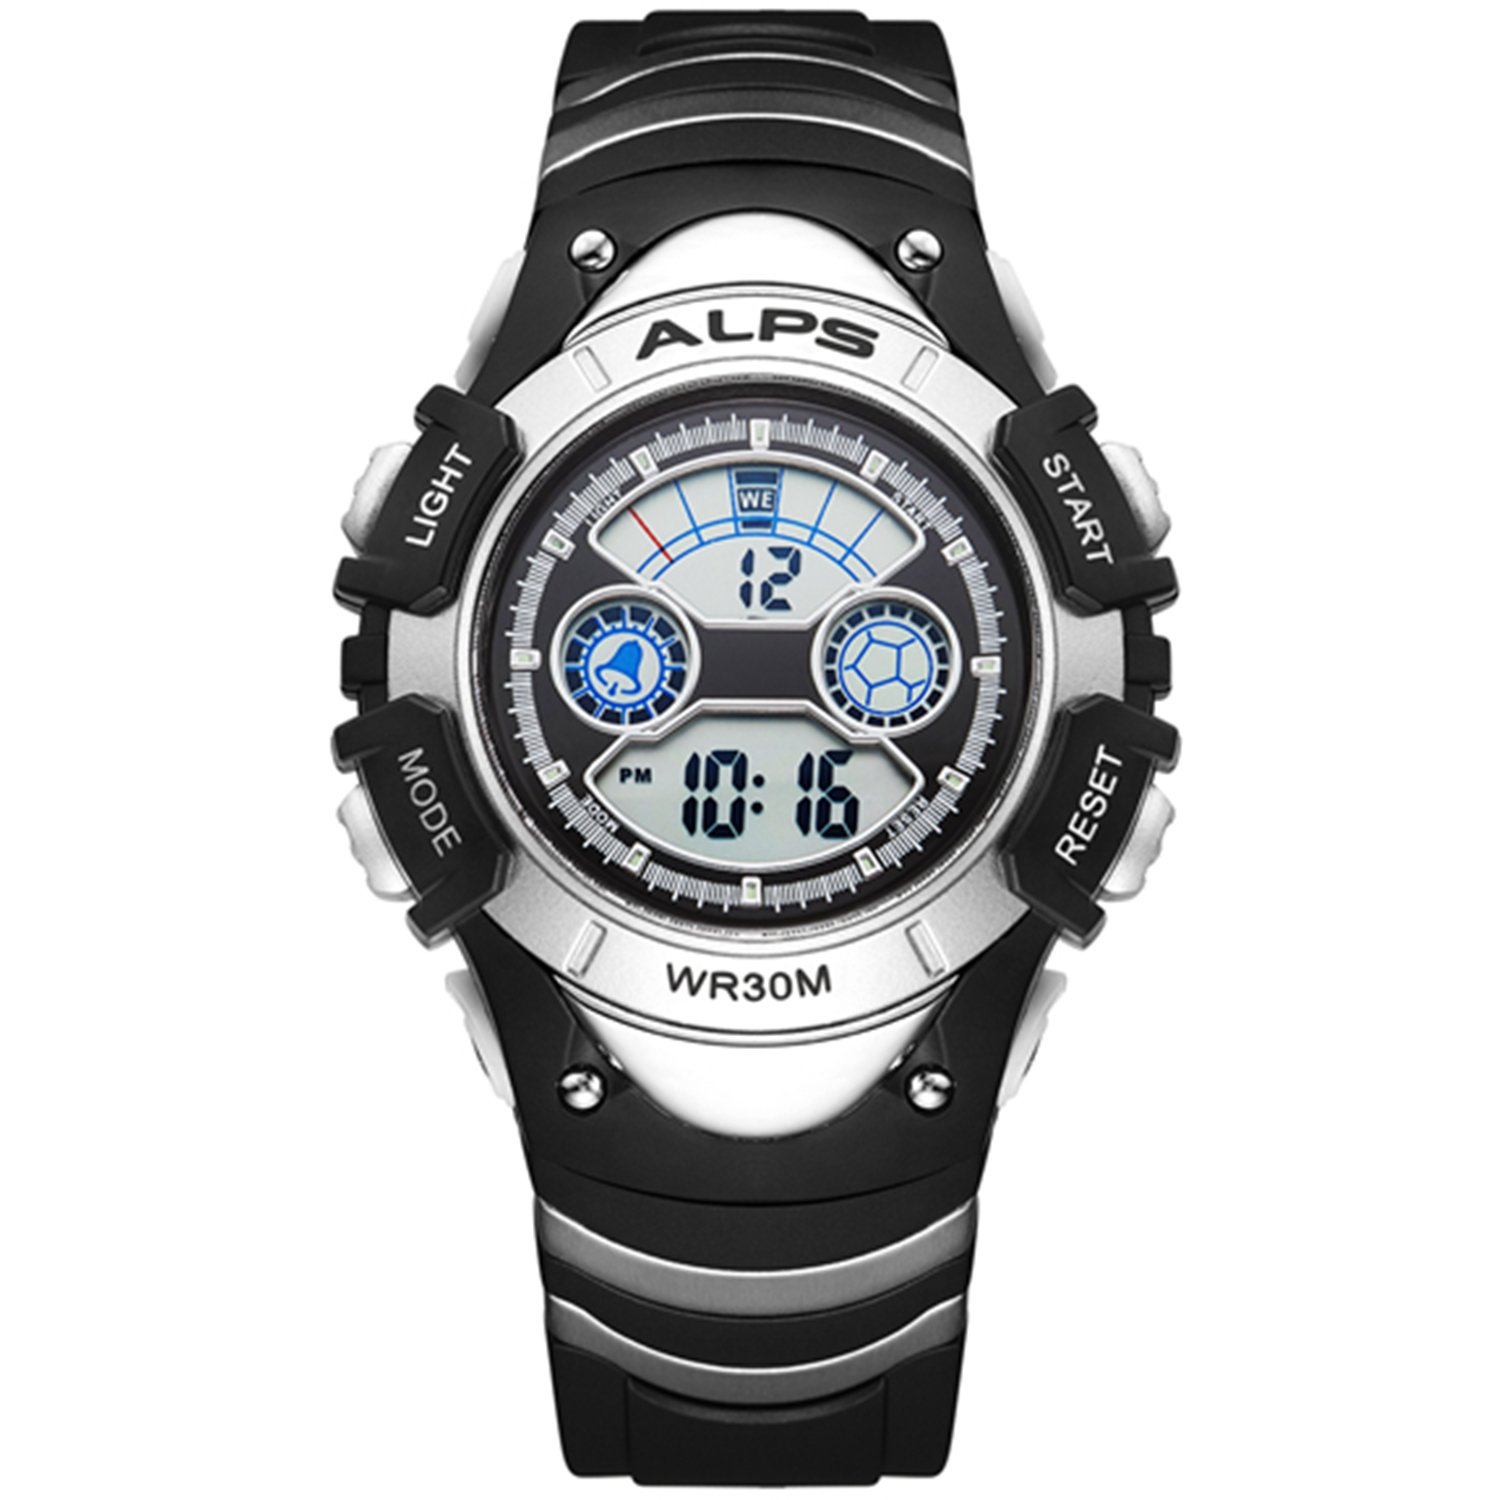 Kid's Outdoor Sports Waterproof Digital Watch With Alarm,calendar And Stopwatch(Silver)